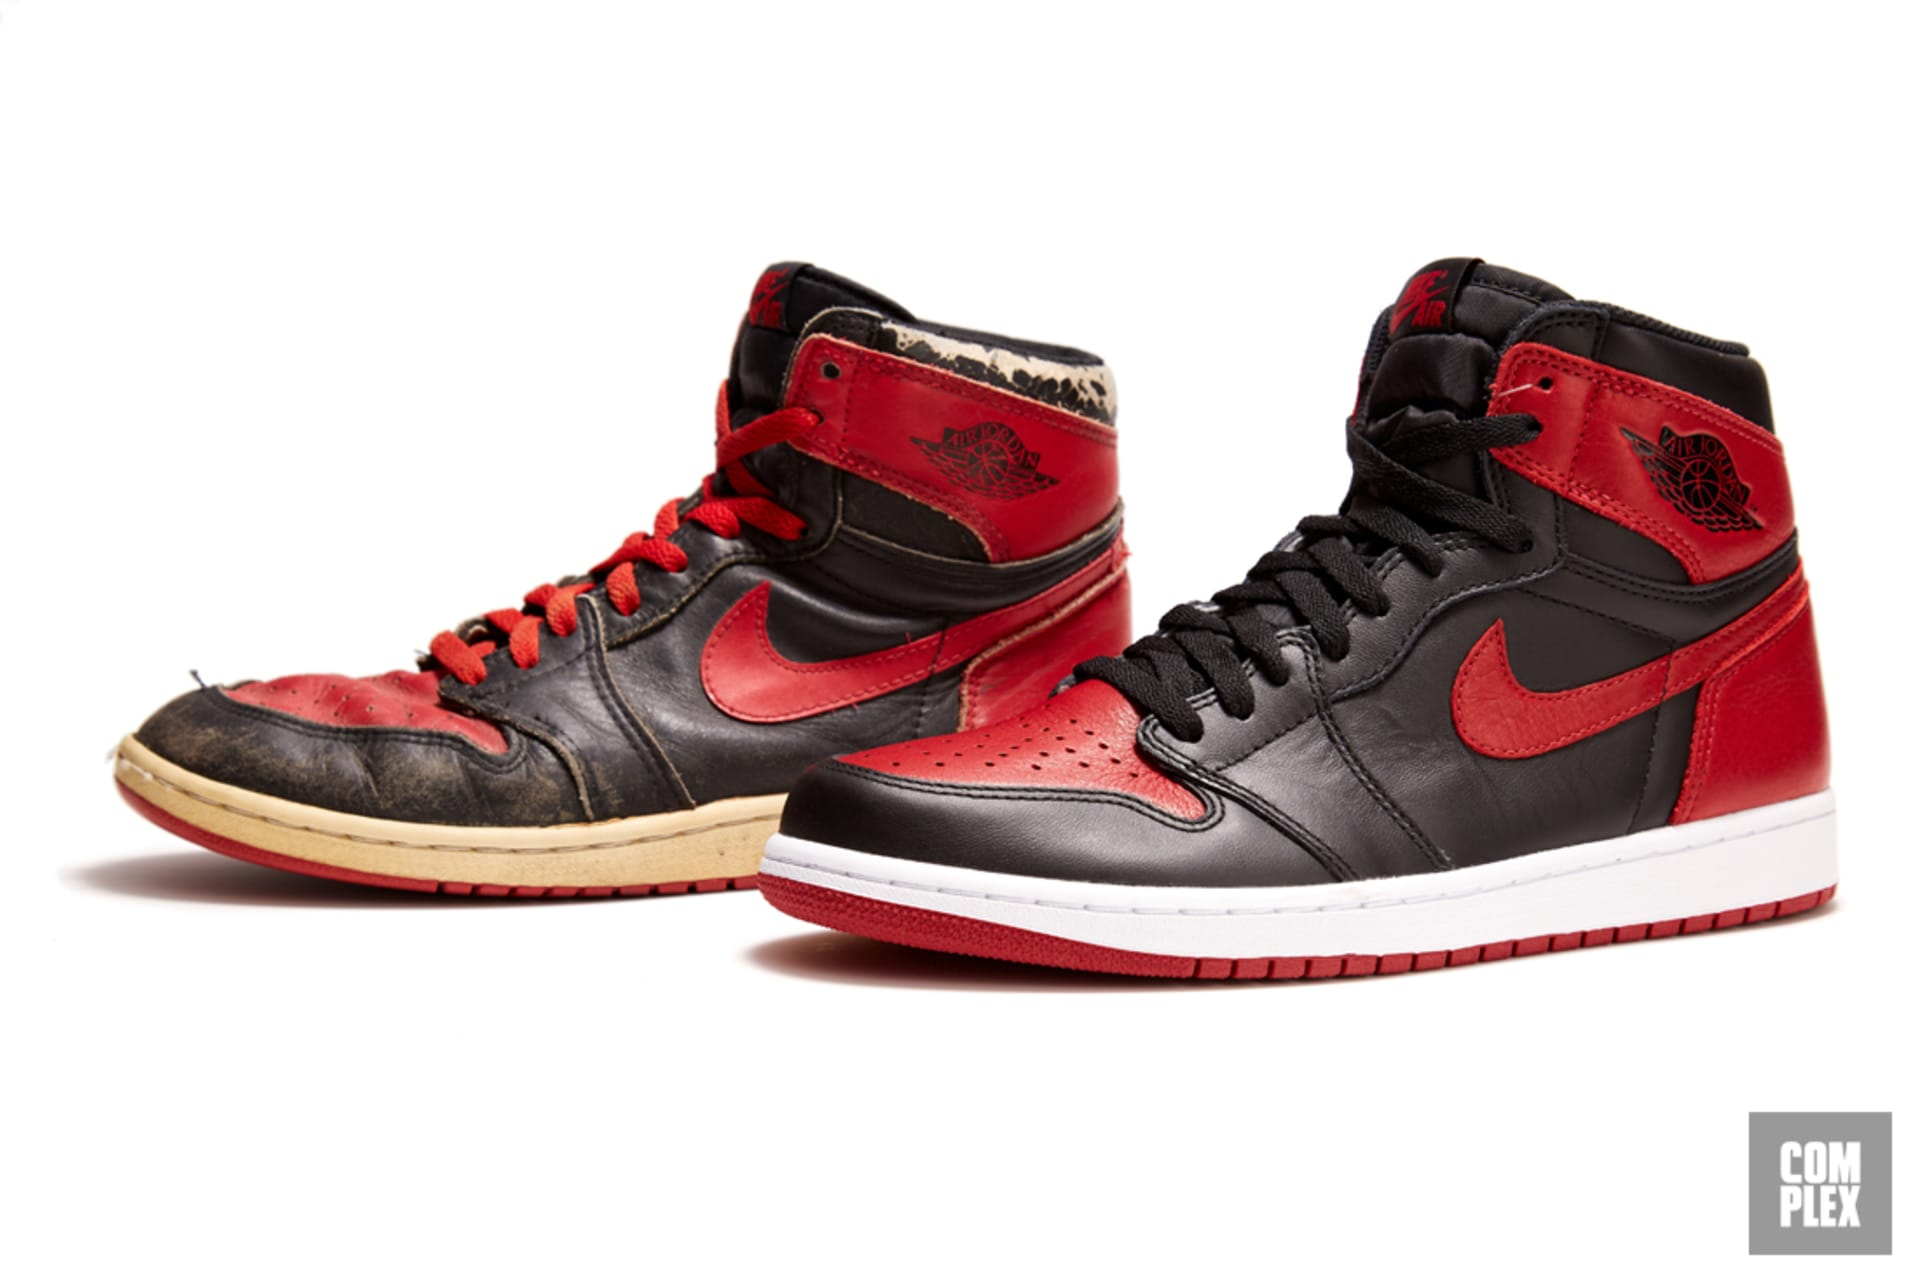 4f92d4d7a97 The Evolution of the Black and Red Air Jordan 1